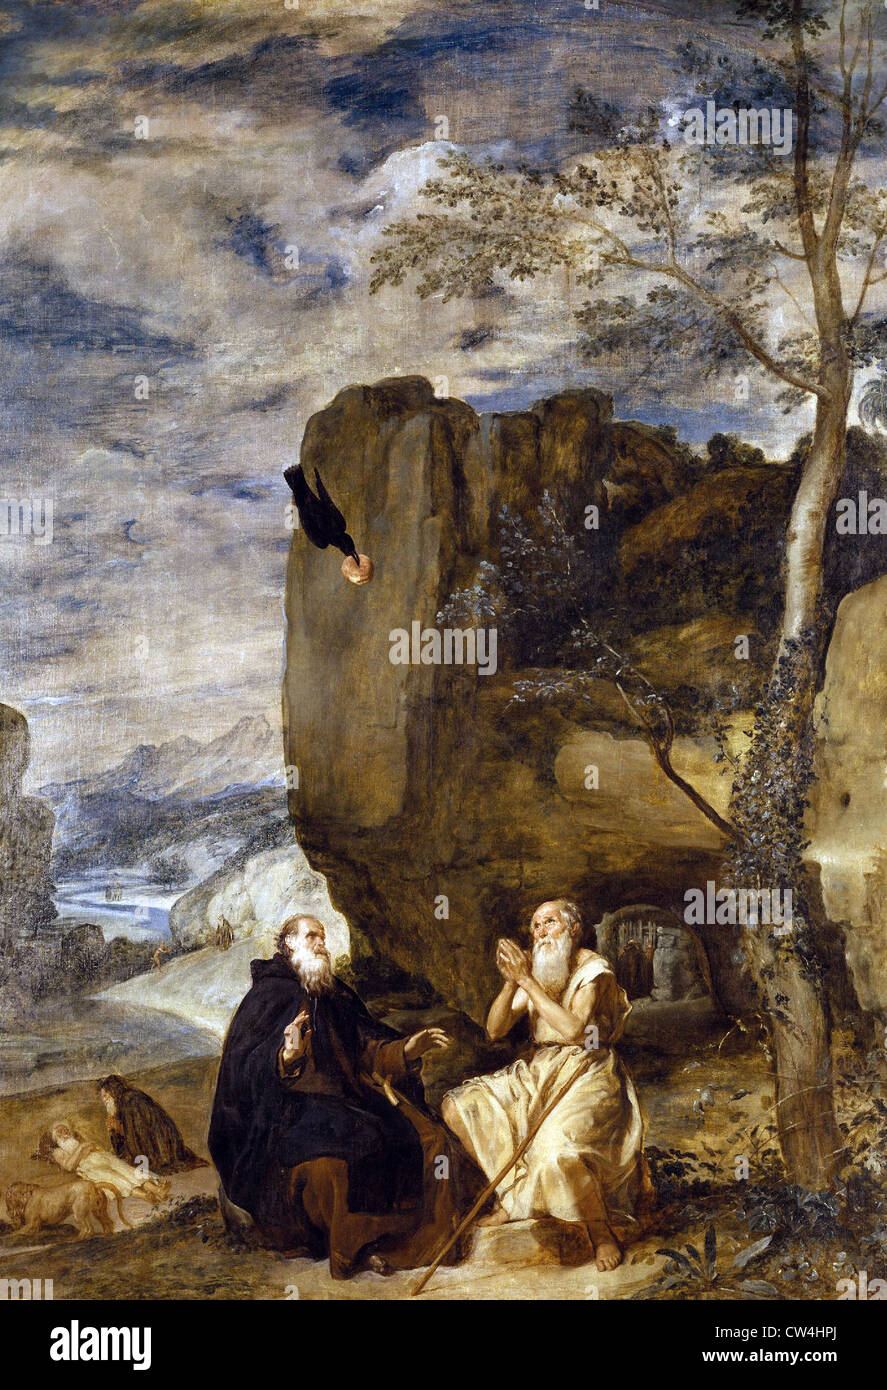 Diego Velazquez St. Anthony and St. Paul, first hermit 1634 Prado Museum - Madrid - Stock Image